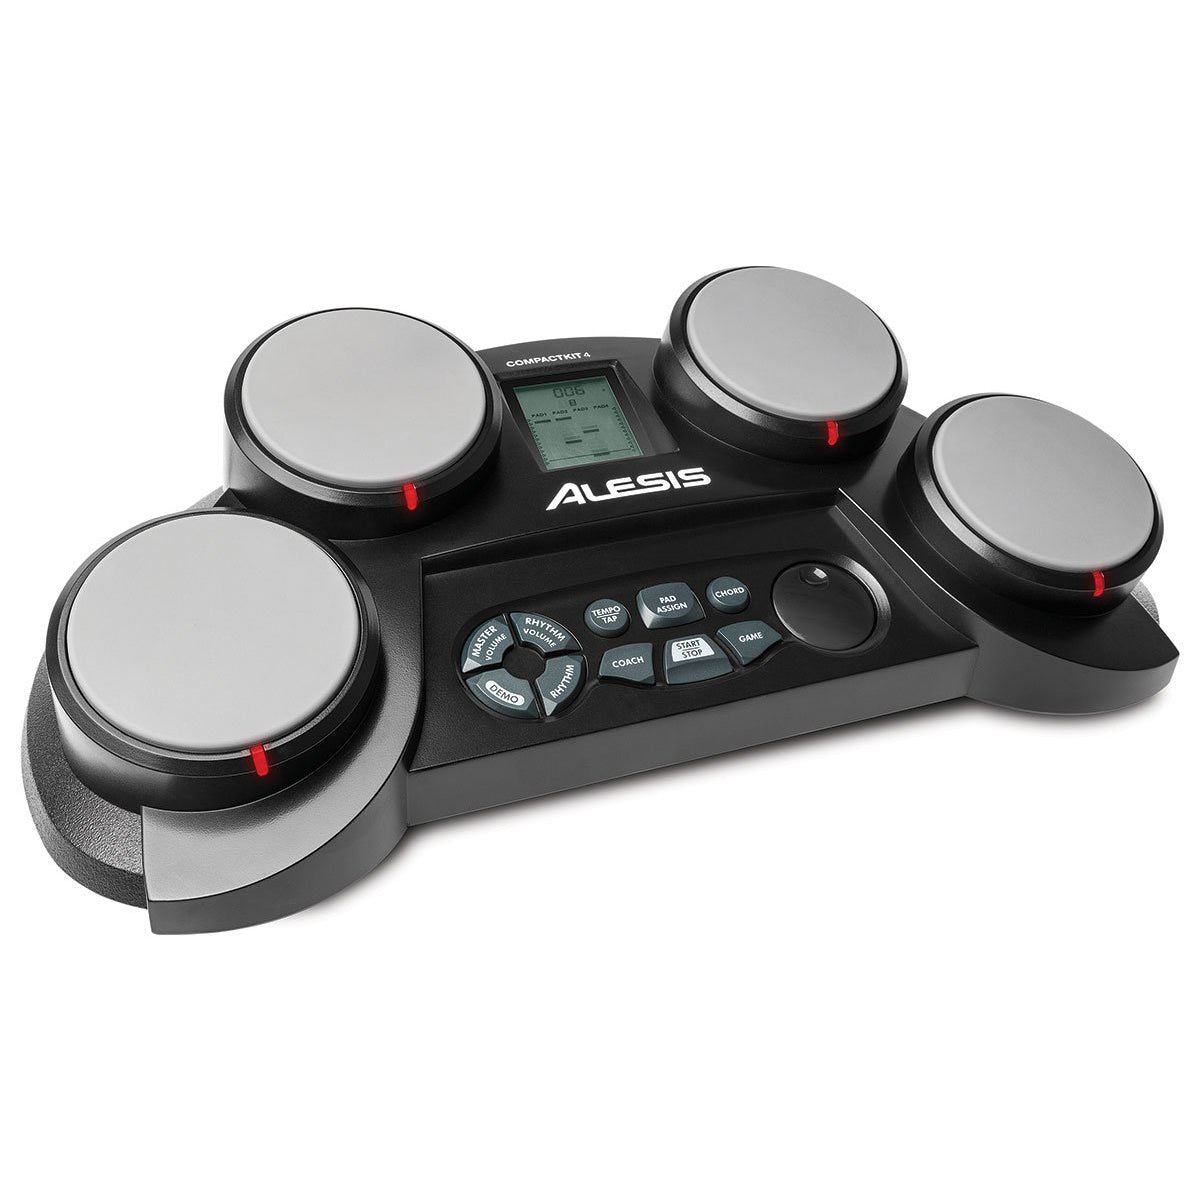 Alesis Compact Kit 4-Pad Portable Tabletop Drum Kit